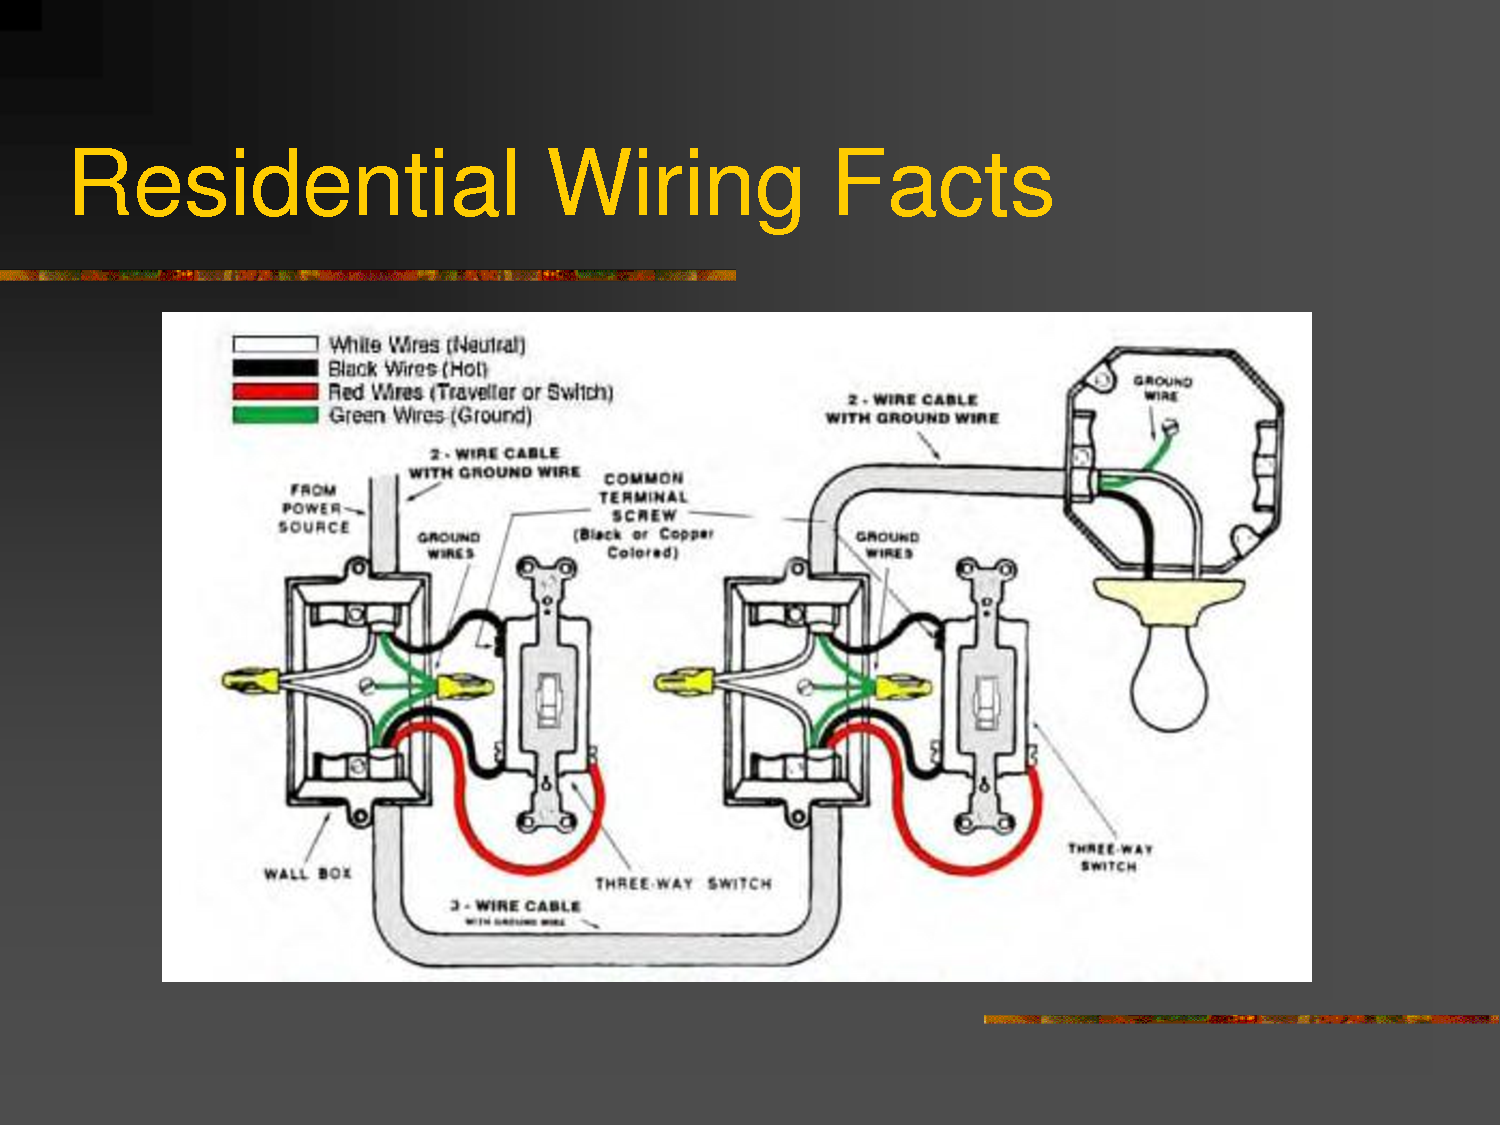 wiring diagram residential the wiring diagram 4 best images of residential wiring diagrams house electrical wiring diagram